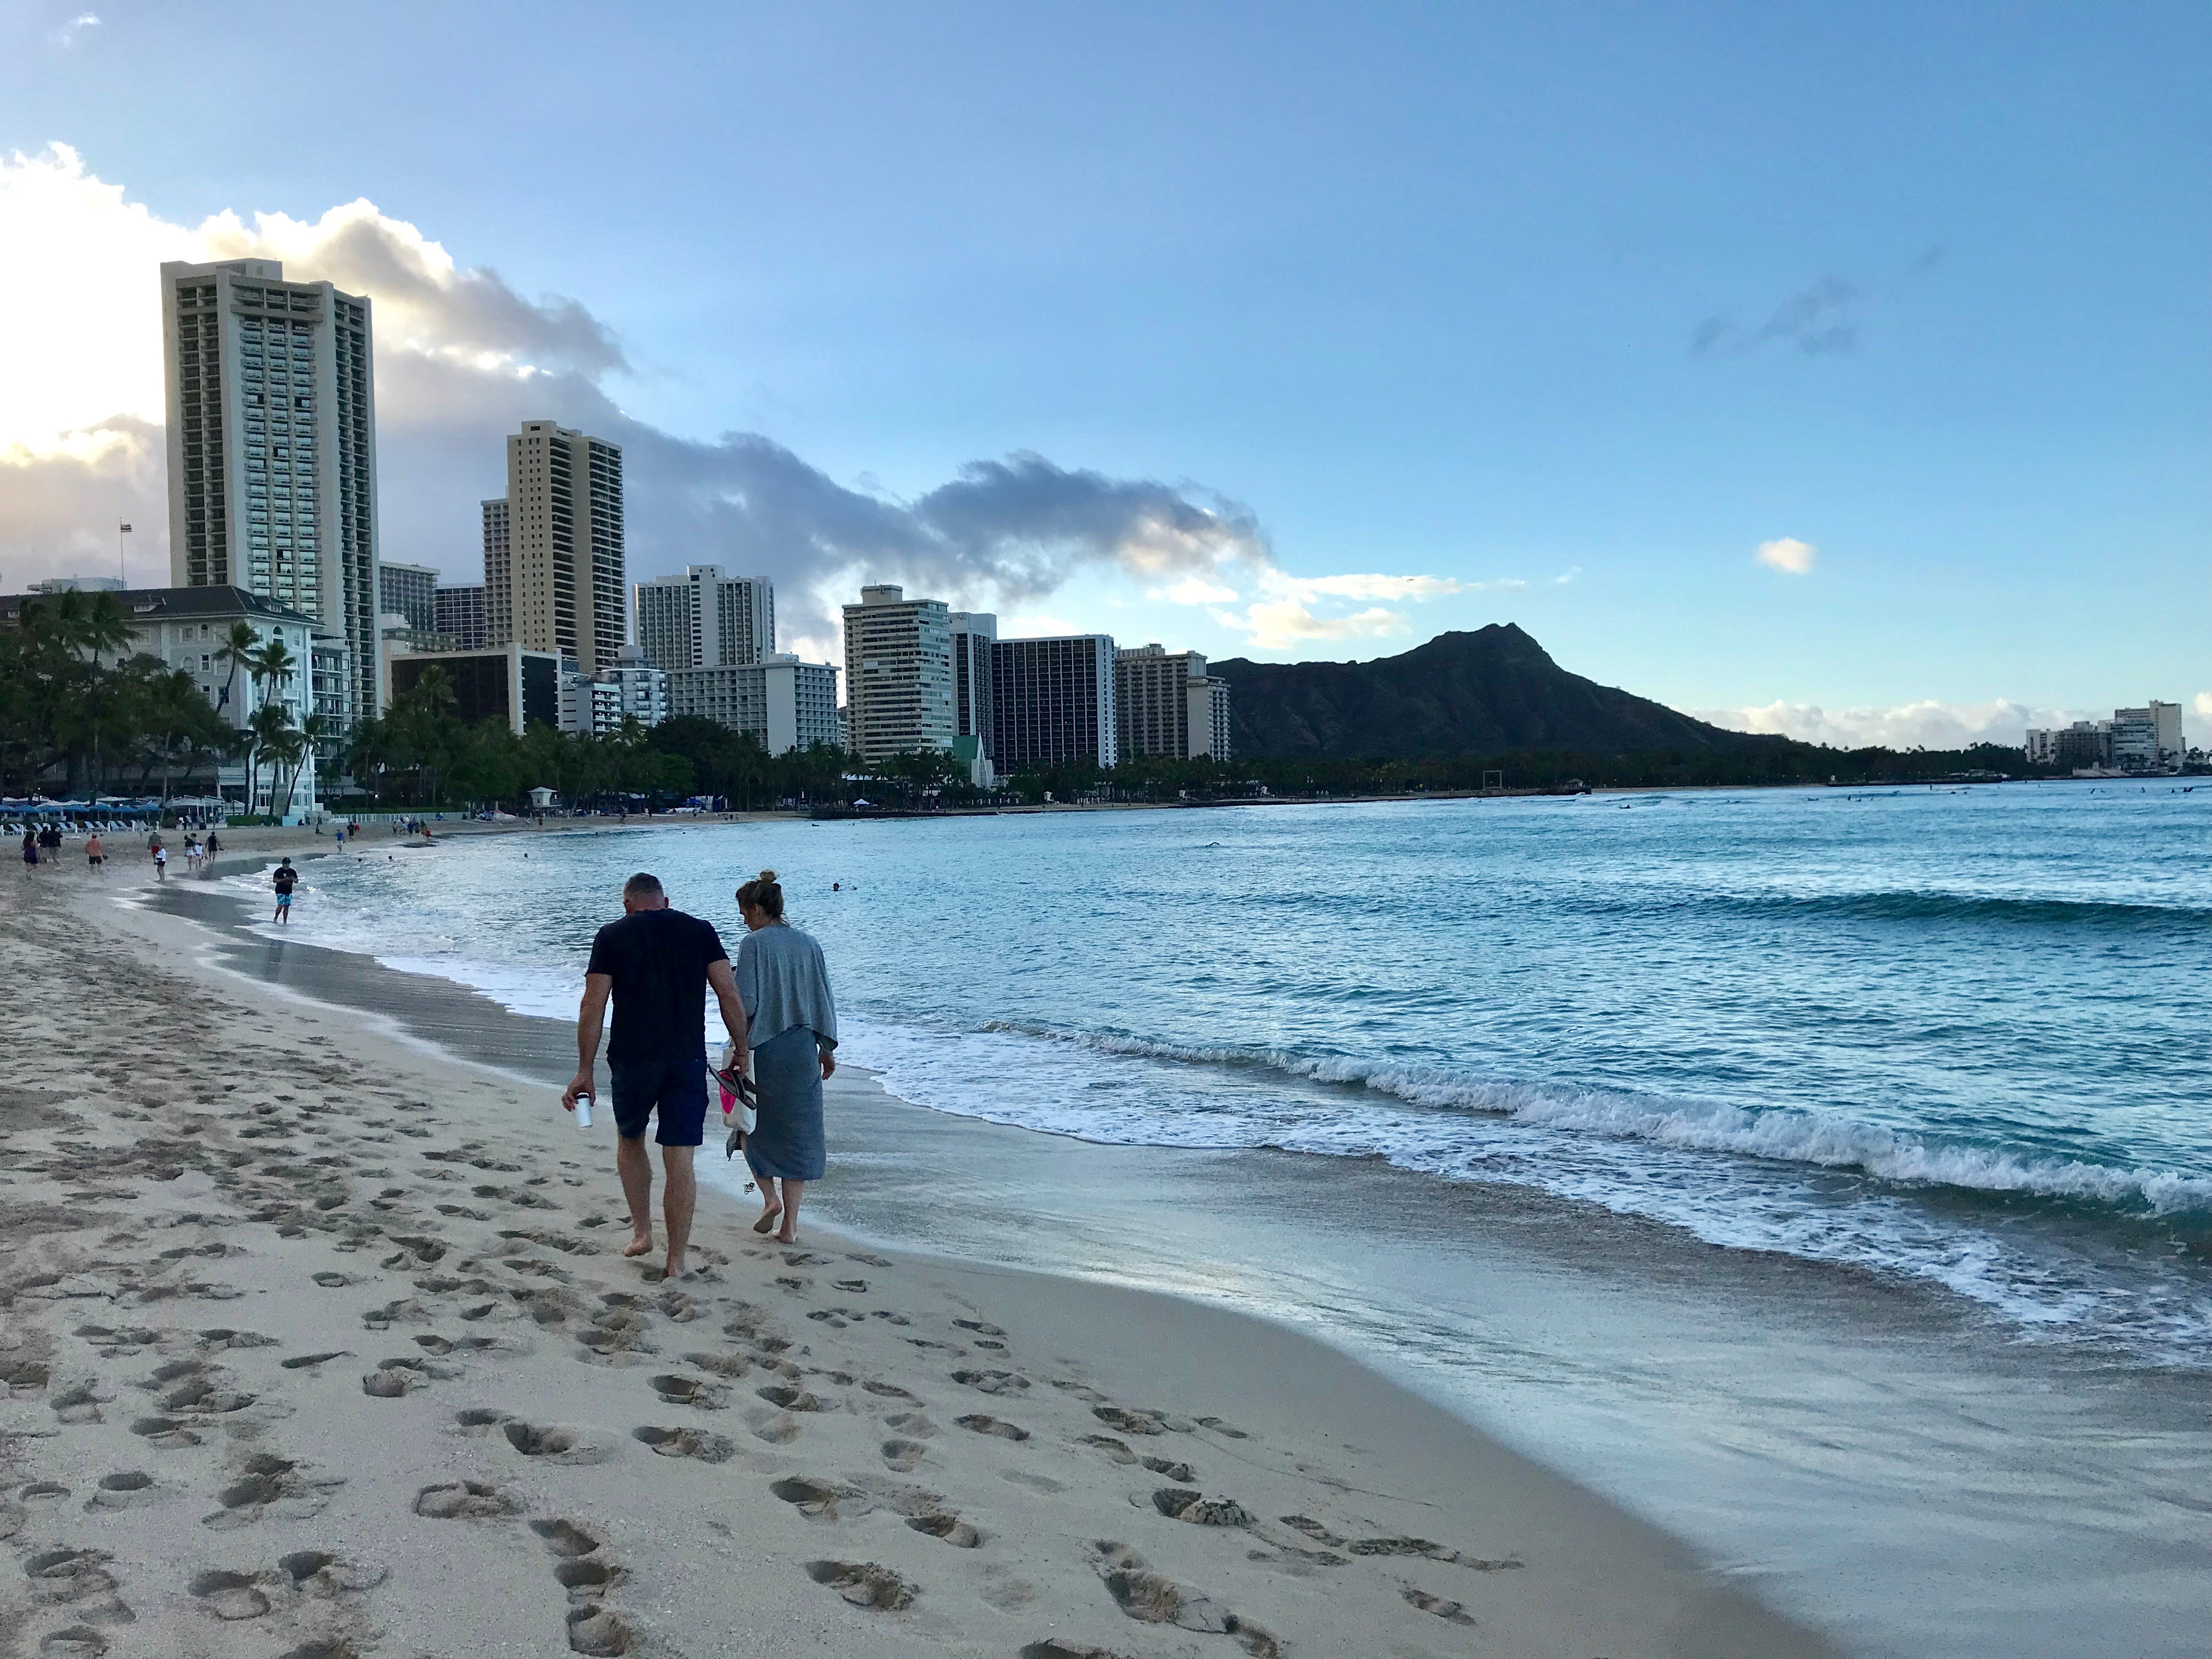 Sunrise at iconic Waikiki Beach, with Diamond Head in the distance.